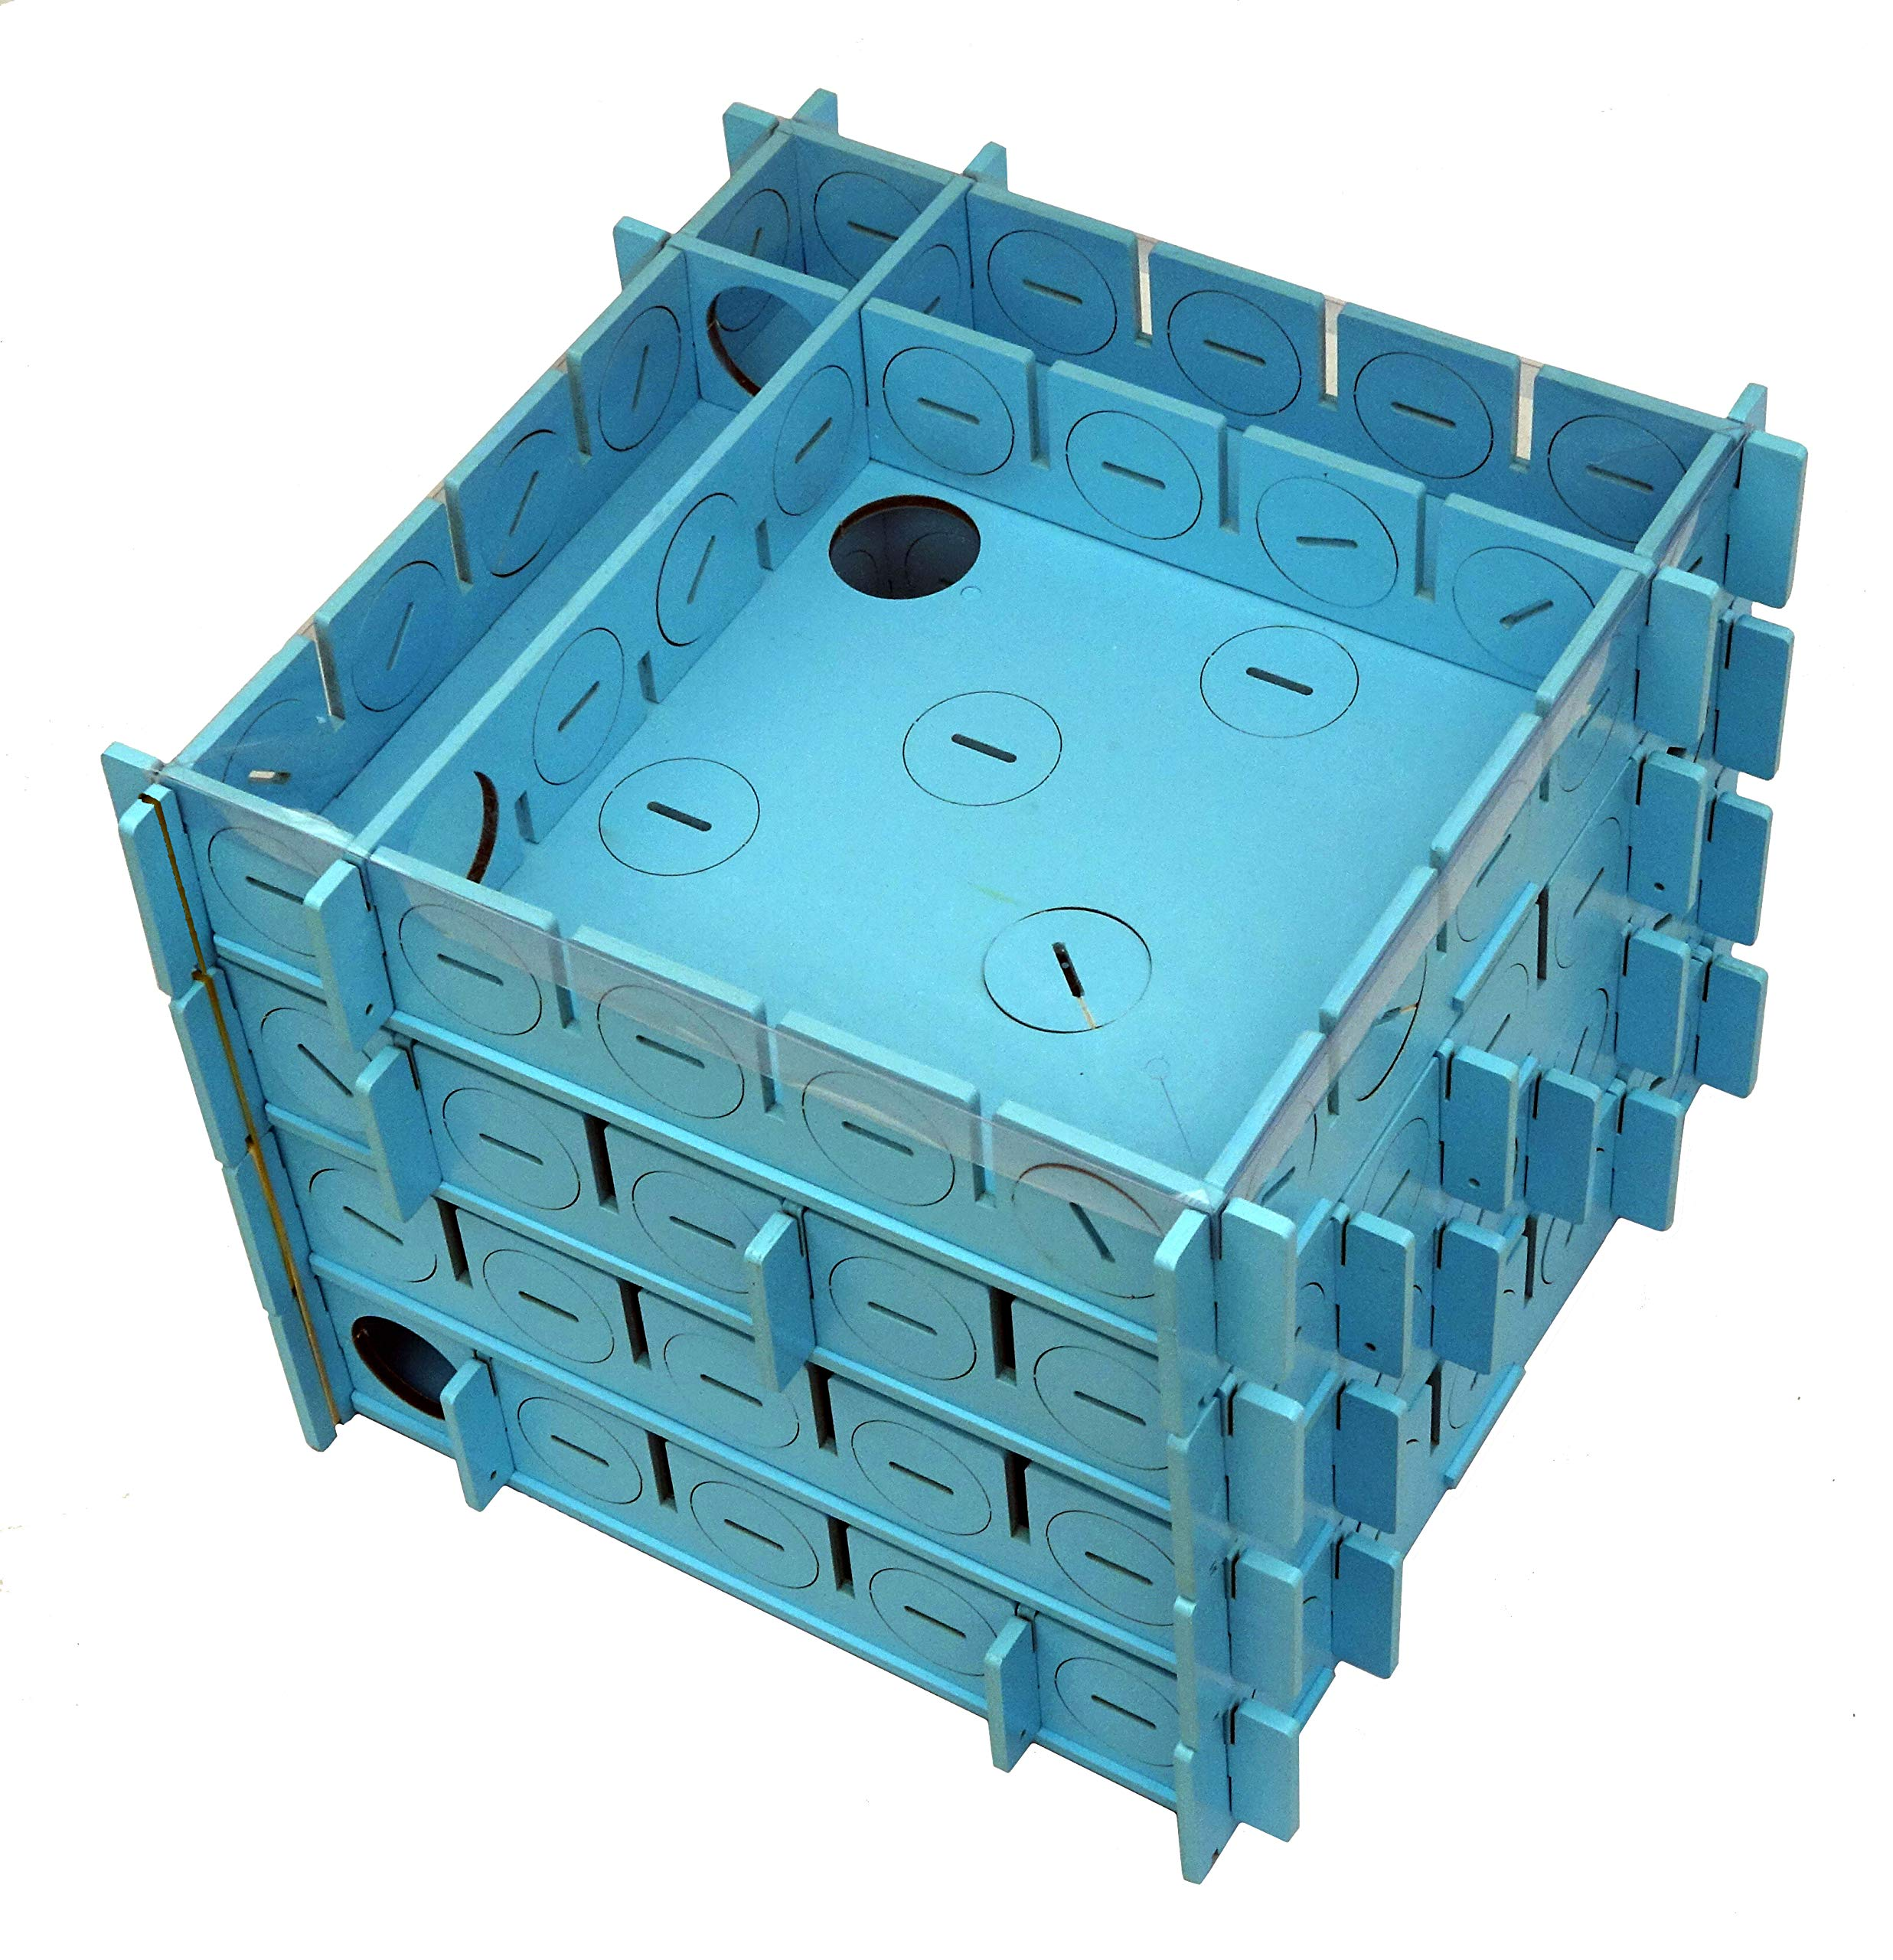 Playtime Maze Reconfigurable Maze for Dwarf Hamsters, Mice and Small Rats by Playtime Maze (Image #5)